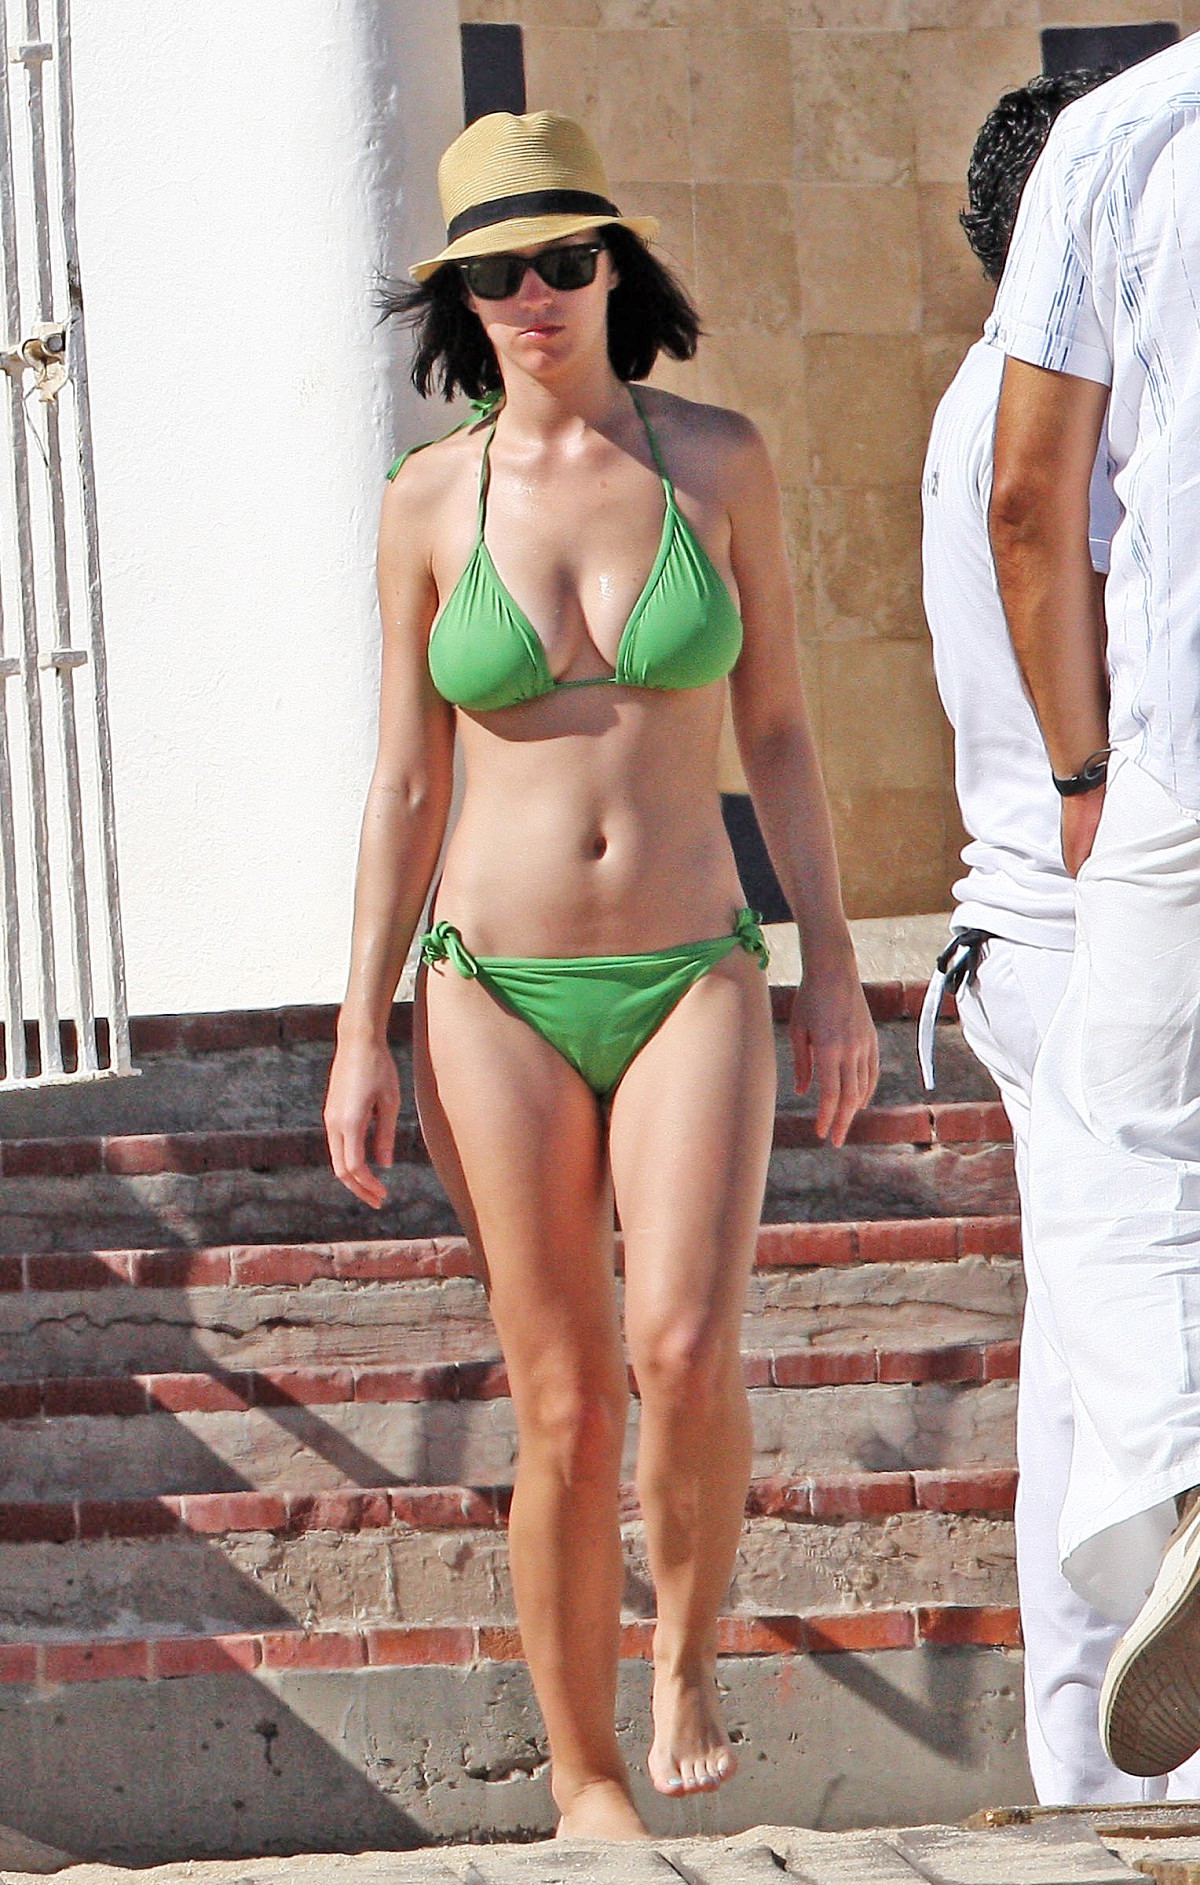 Katy Perry Nude Look: Singer Tones It Down In Sexy But